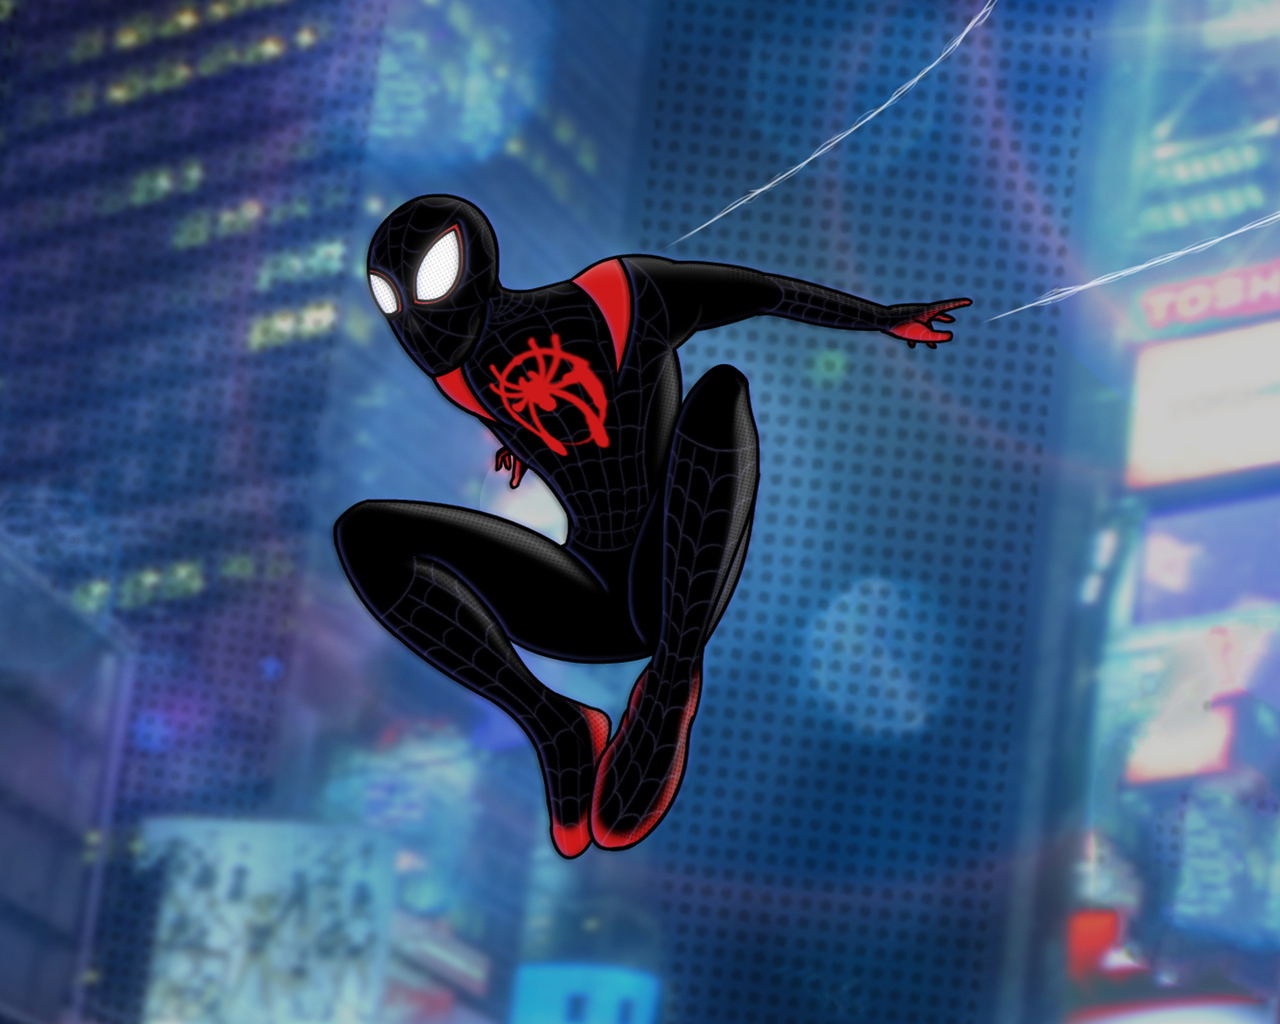 spiderman-miles-morales-digital-artwork-4k-v0.jpg